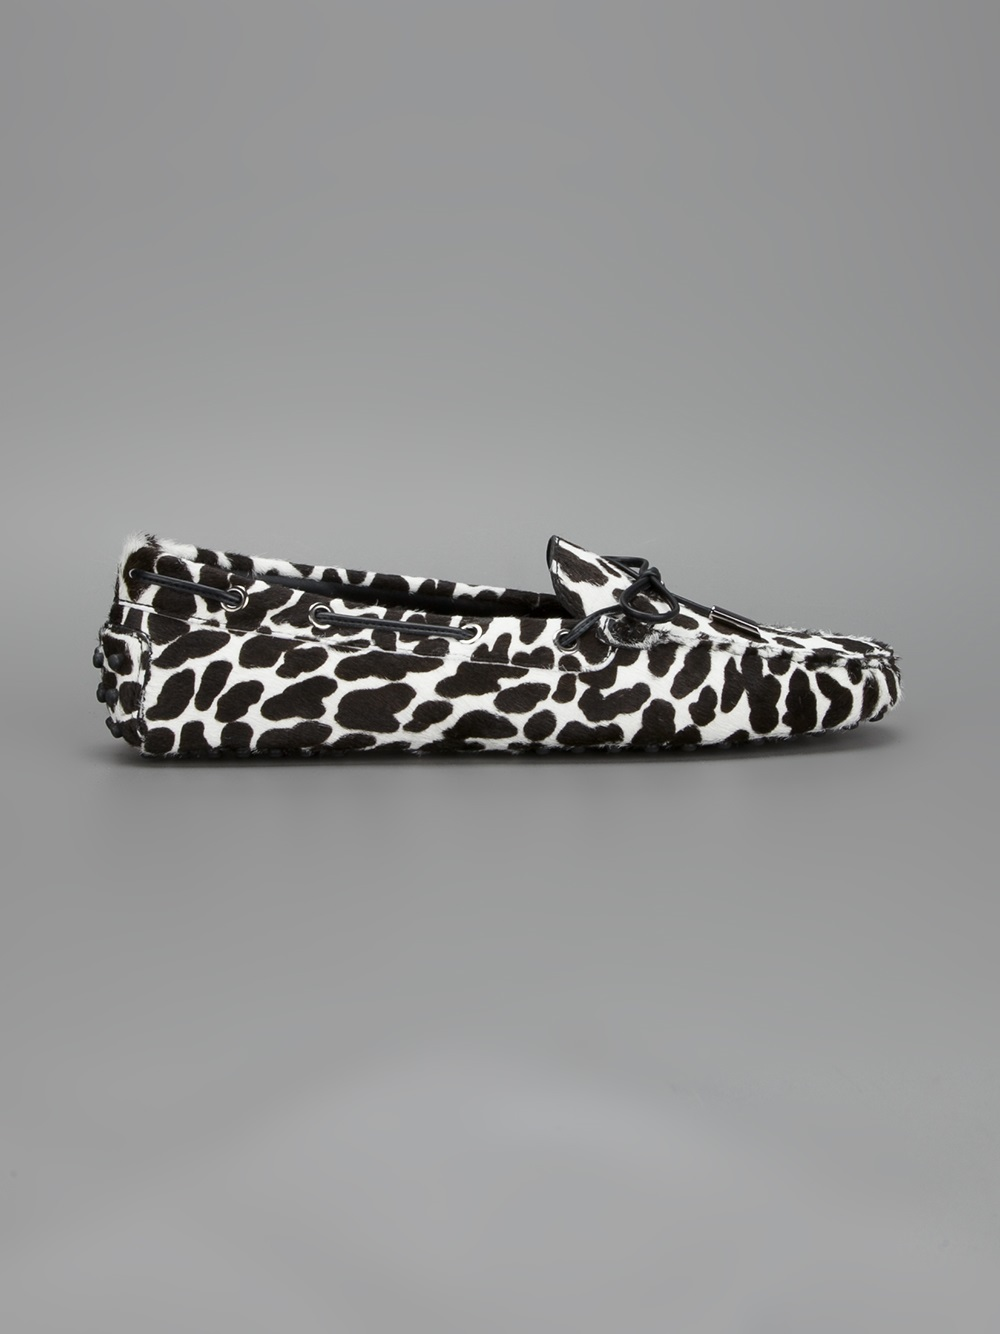 Tod's Animal Print Loafer in Black - Lyst